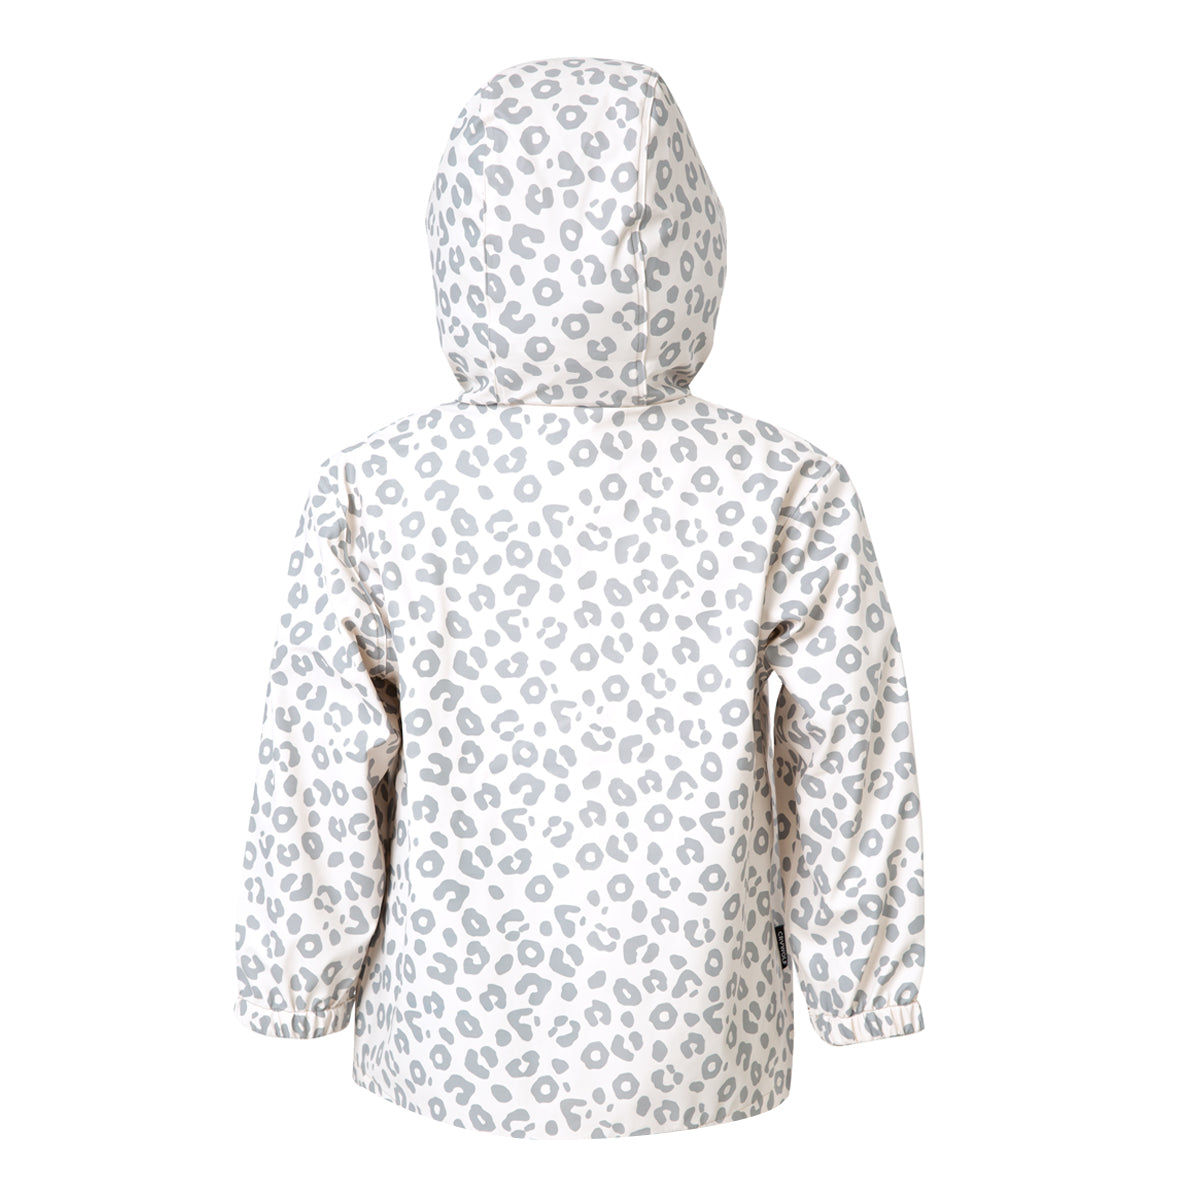 crywolf play jacket children's rain coat leopard back